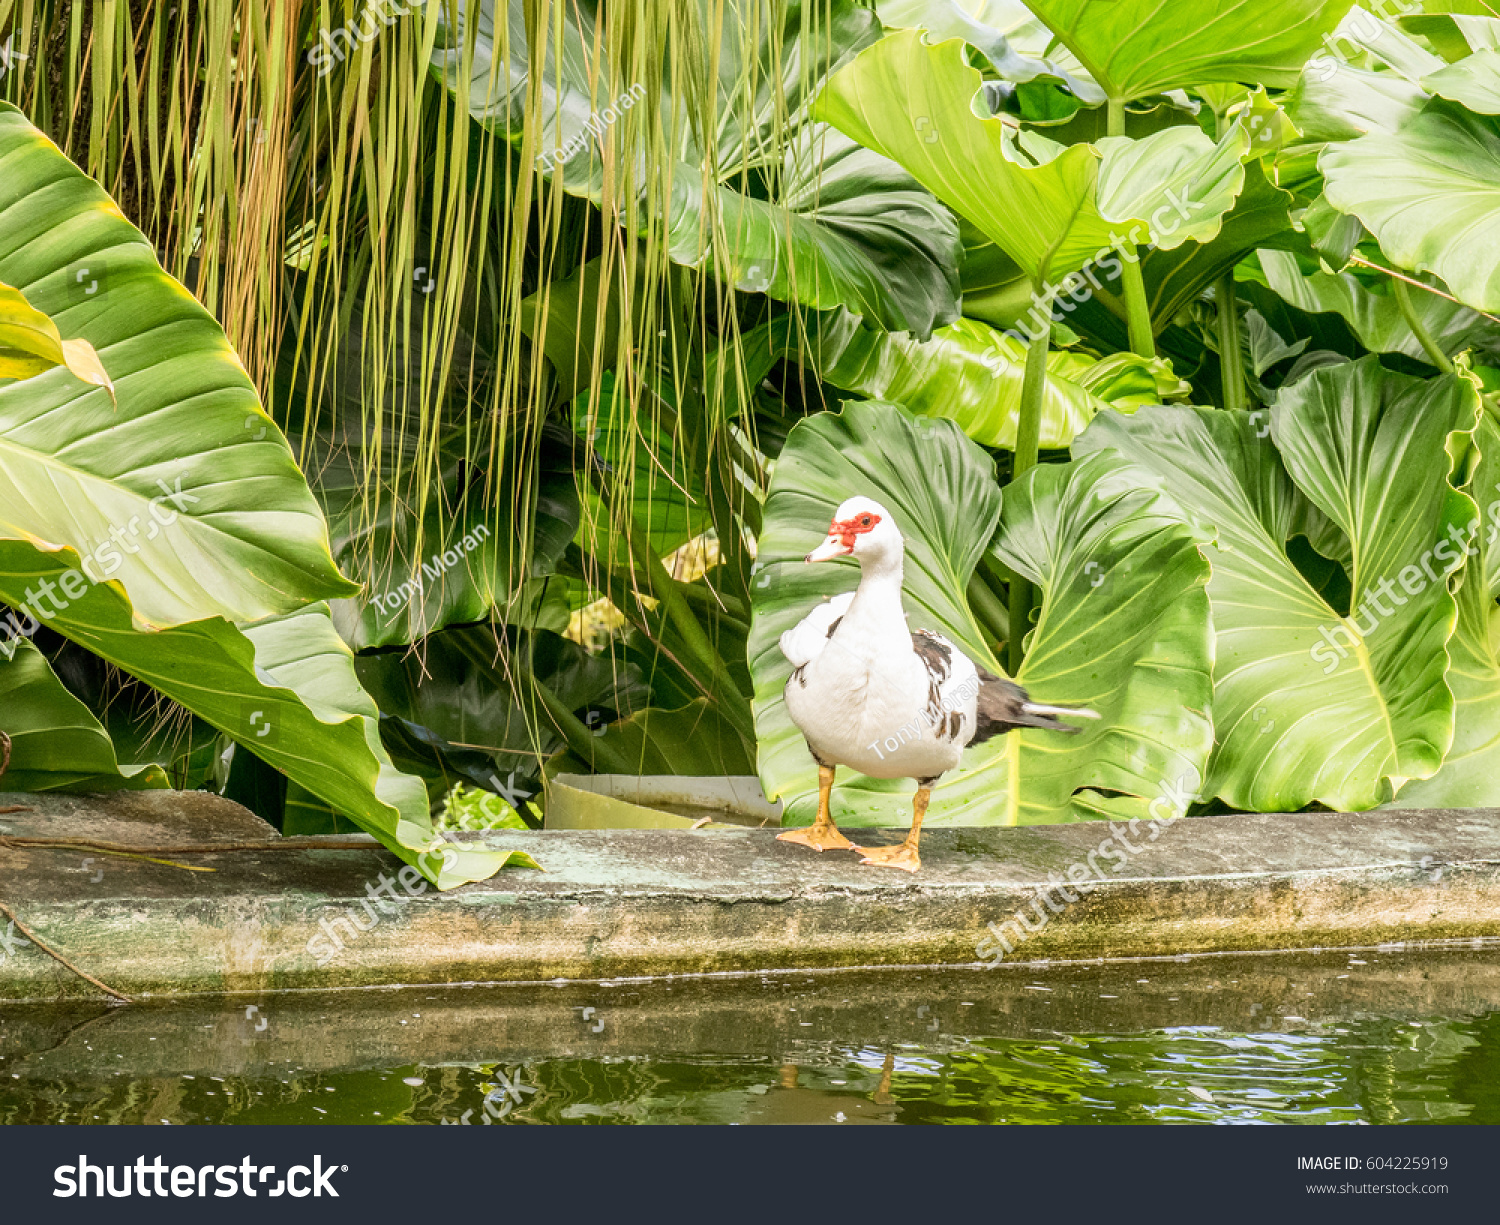 Muscovy duck family garden pool st stock photo 604225919 for Family garden pool